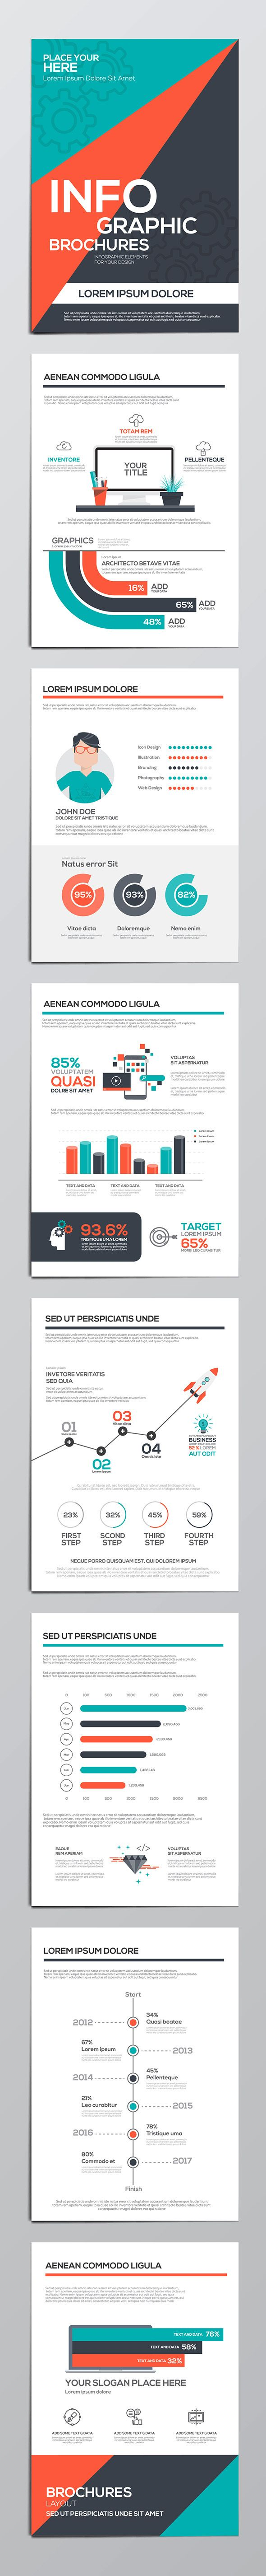 Infographics elements for corporate brochures. Collection of modern infographic elements in a flyer and brochure concept. Flat design